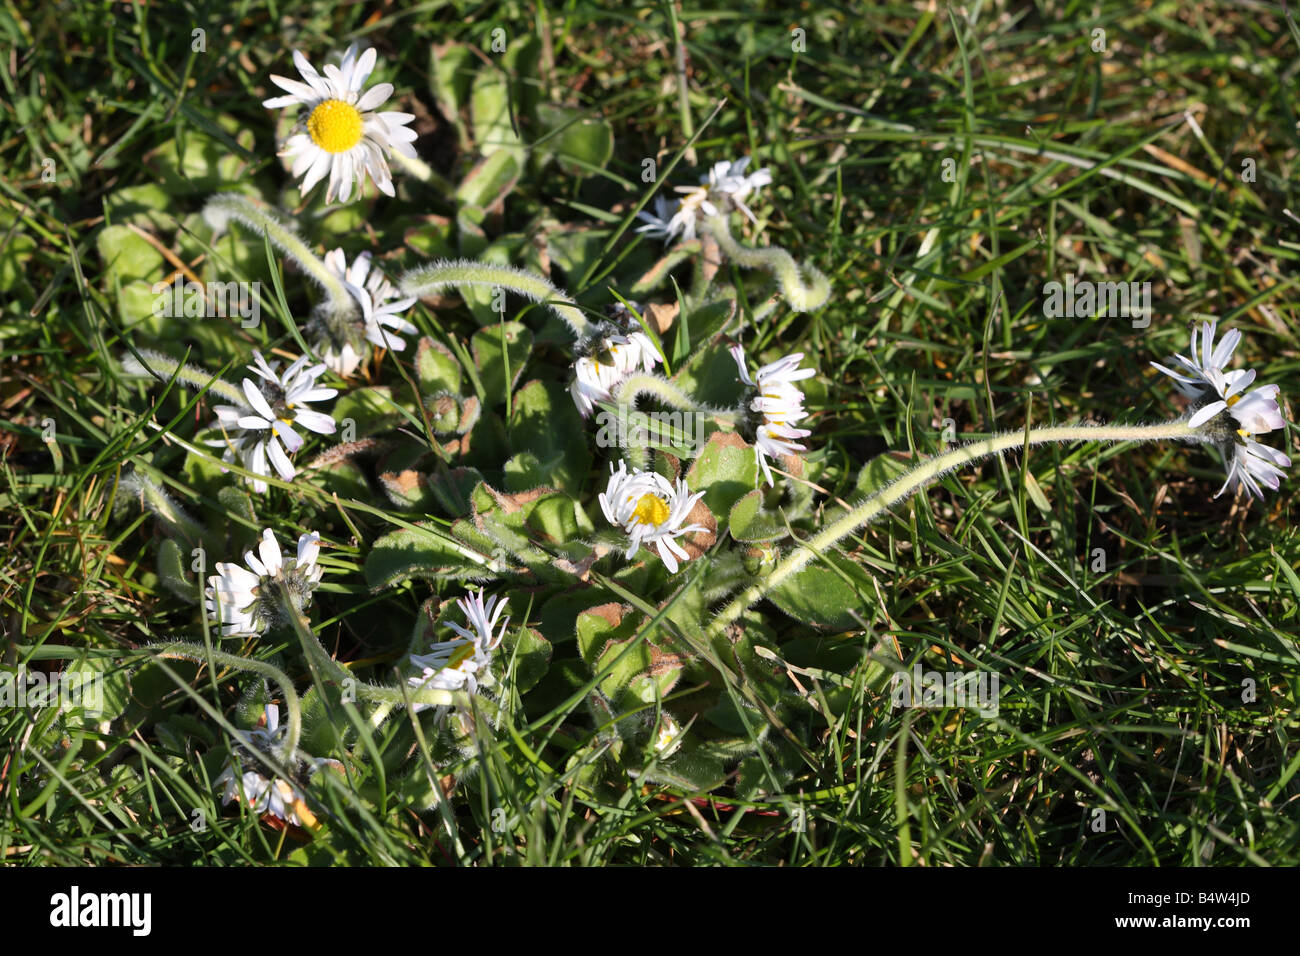 DAISY IN LAWN AFTER TREATMENT WITH WEED KILLER - Stock Image